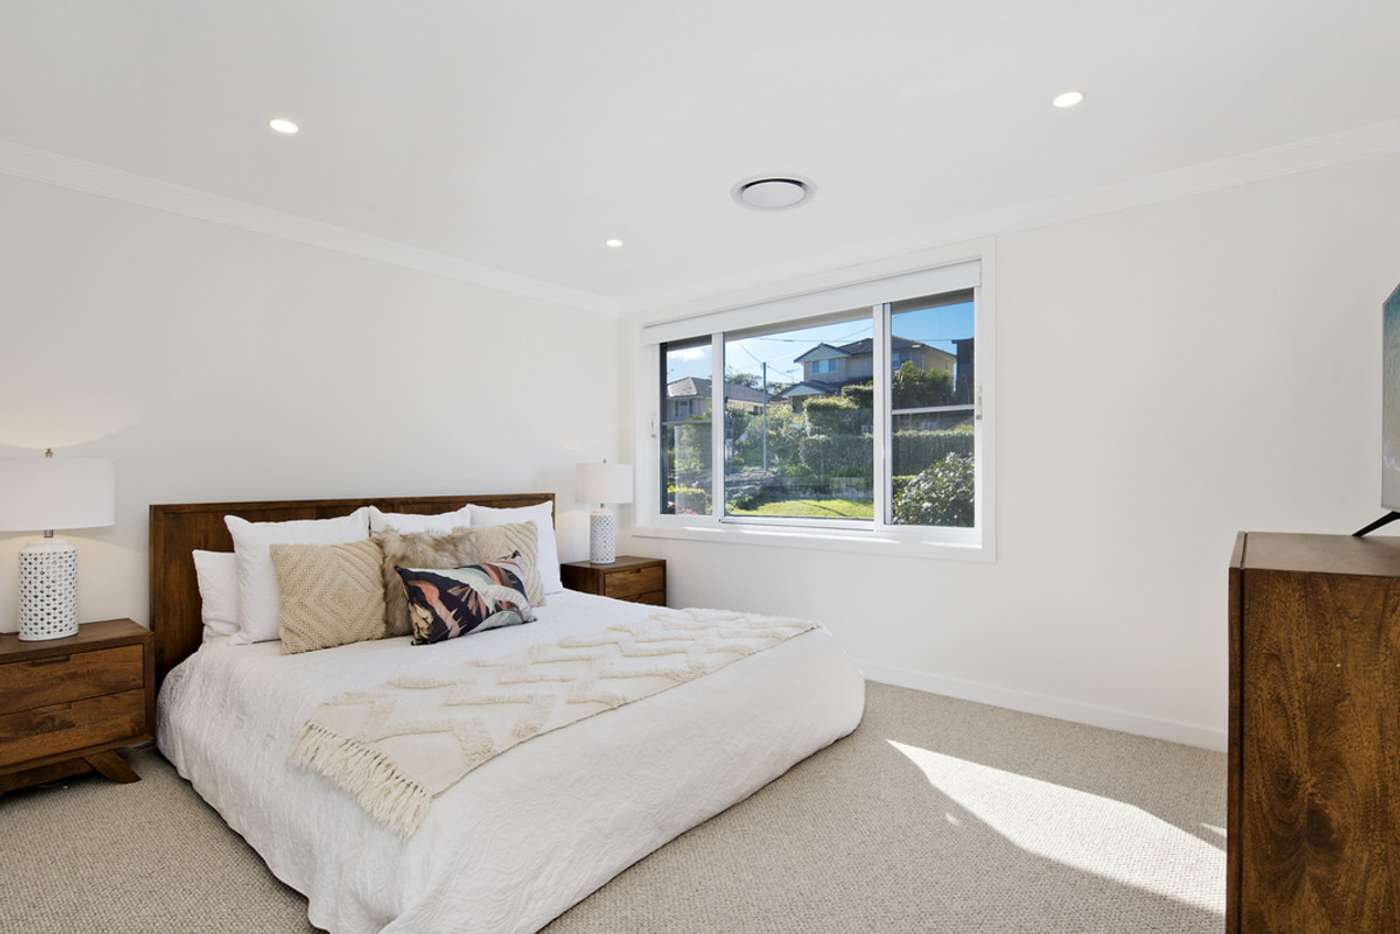 Sixth view of Homely house listing, 21 Arnott Crescent, Warriewood NSW 2102